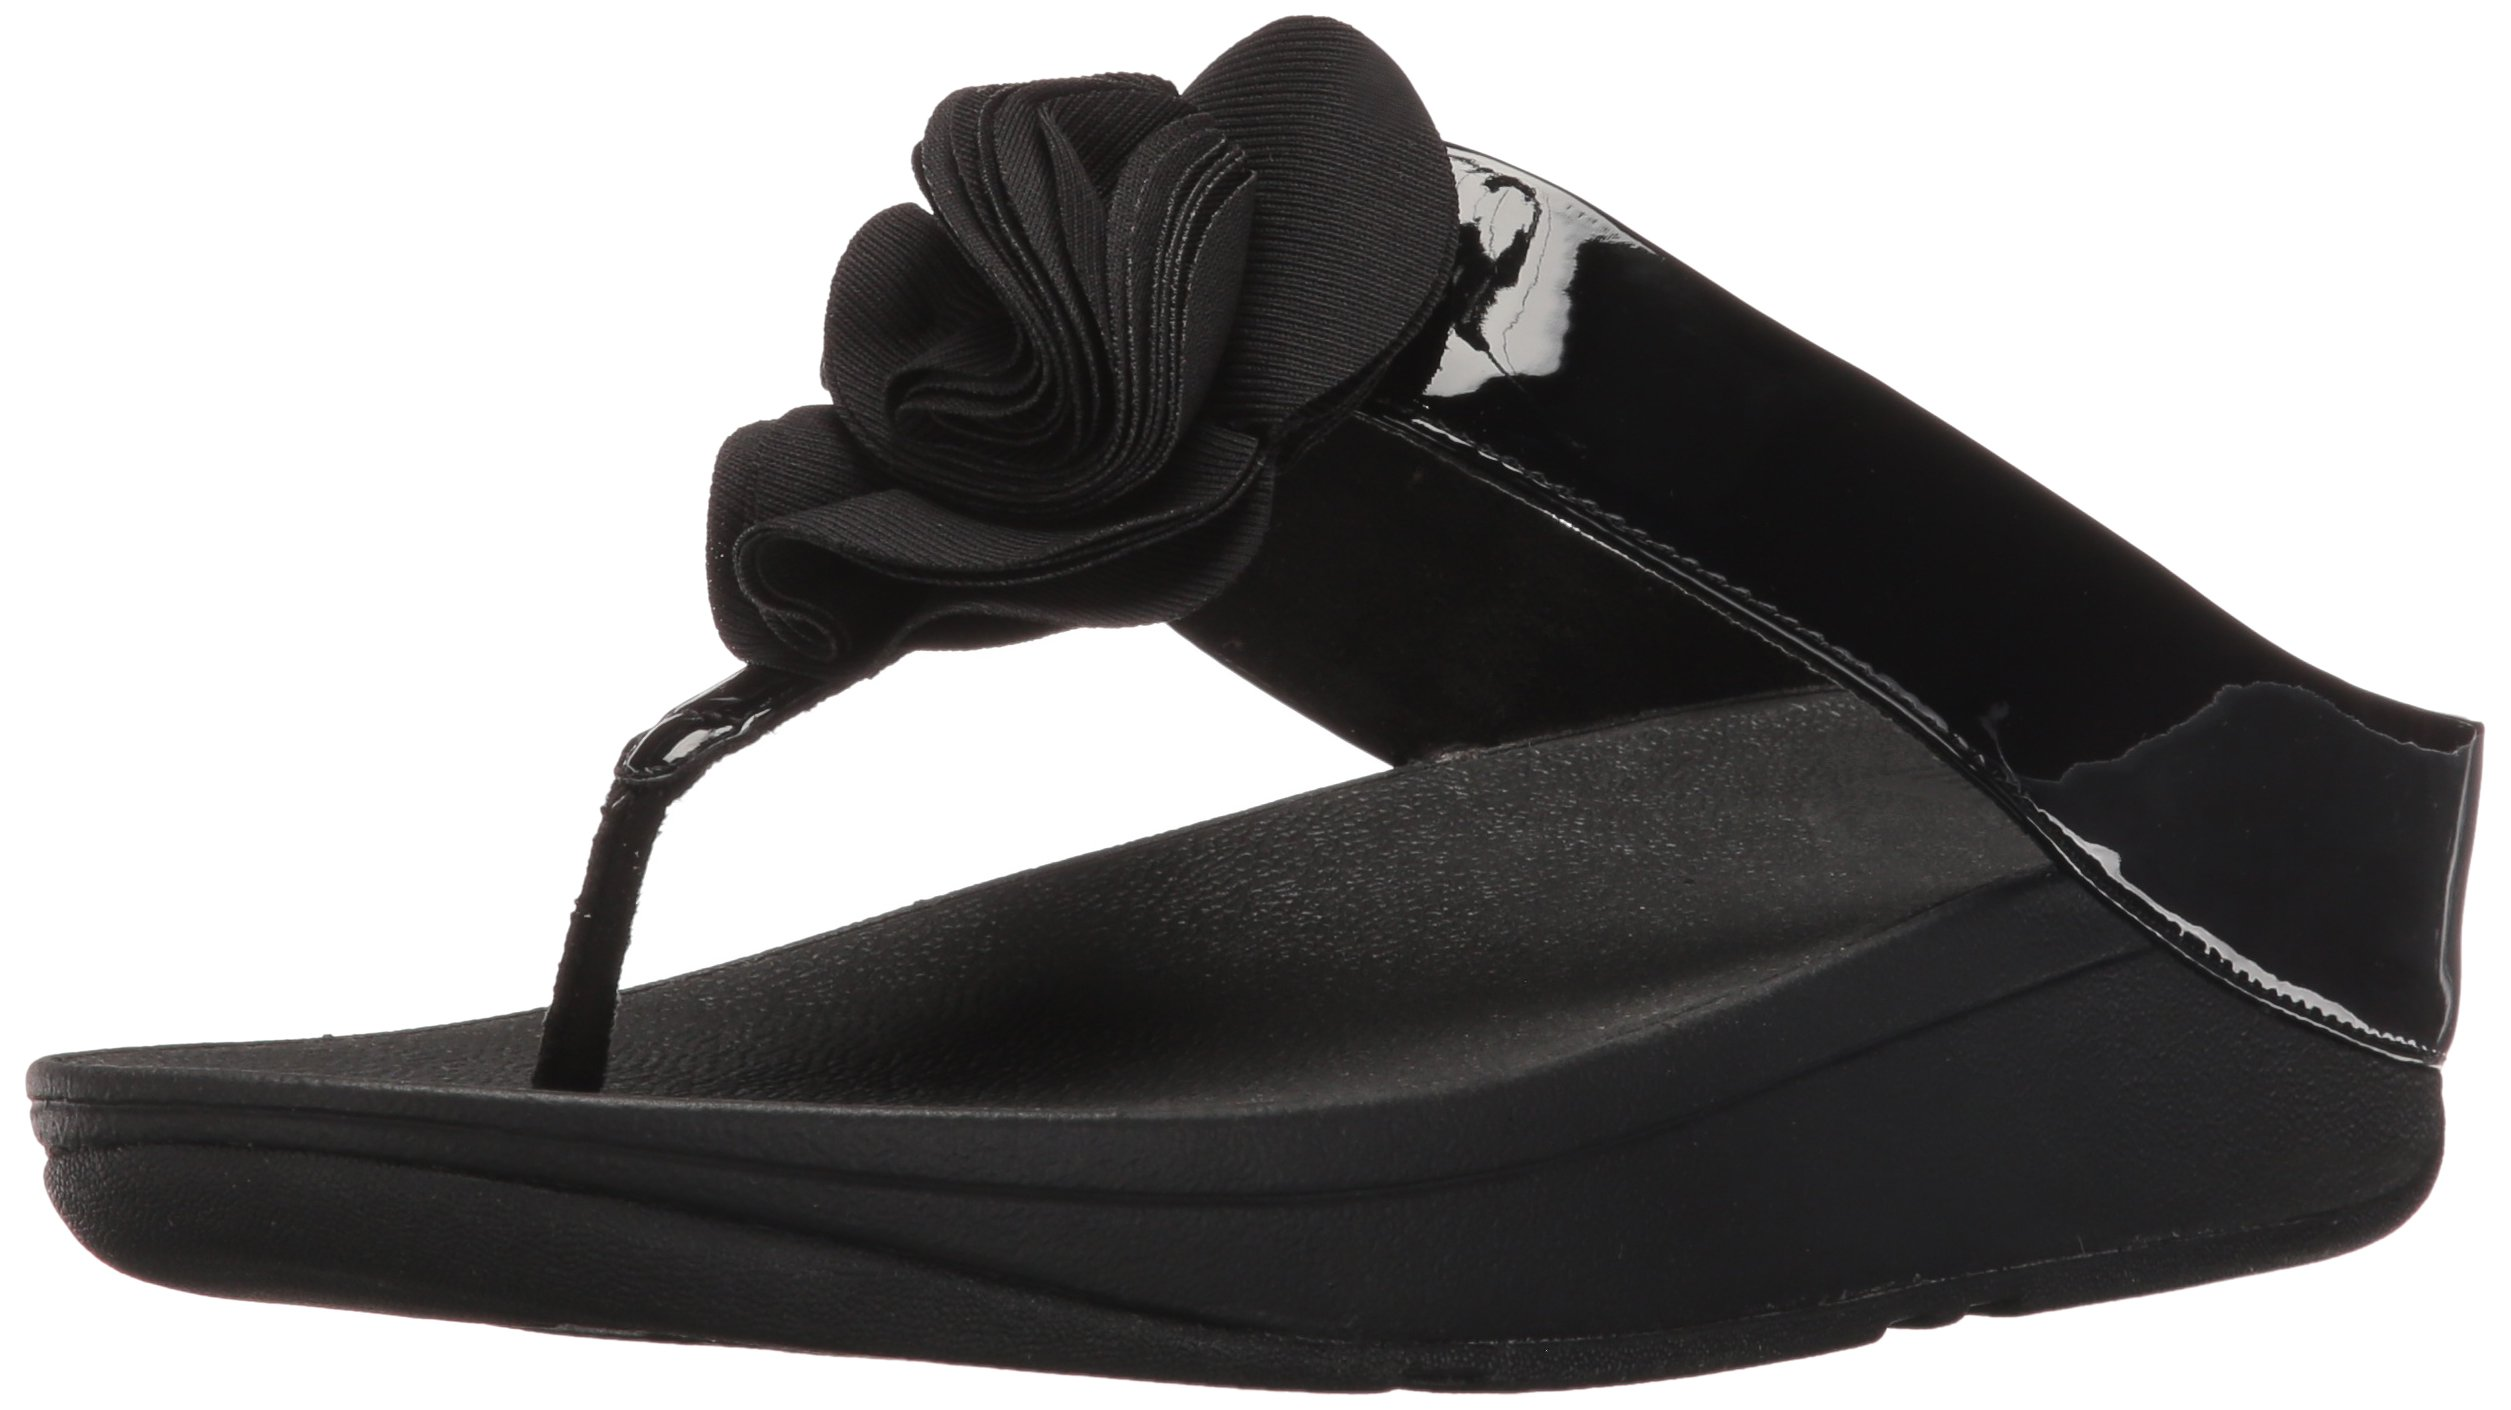 FitFlop Womens Florrie Toe-Thong Sandal, Black Patent, 8 M US